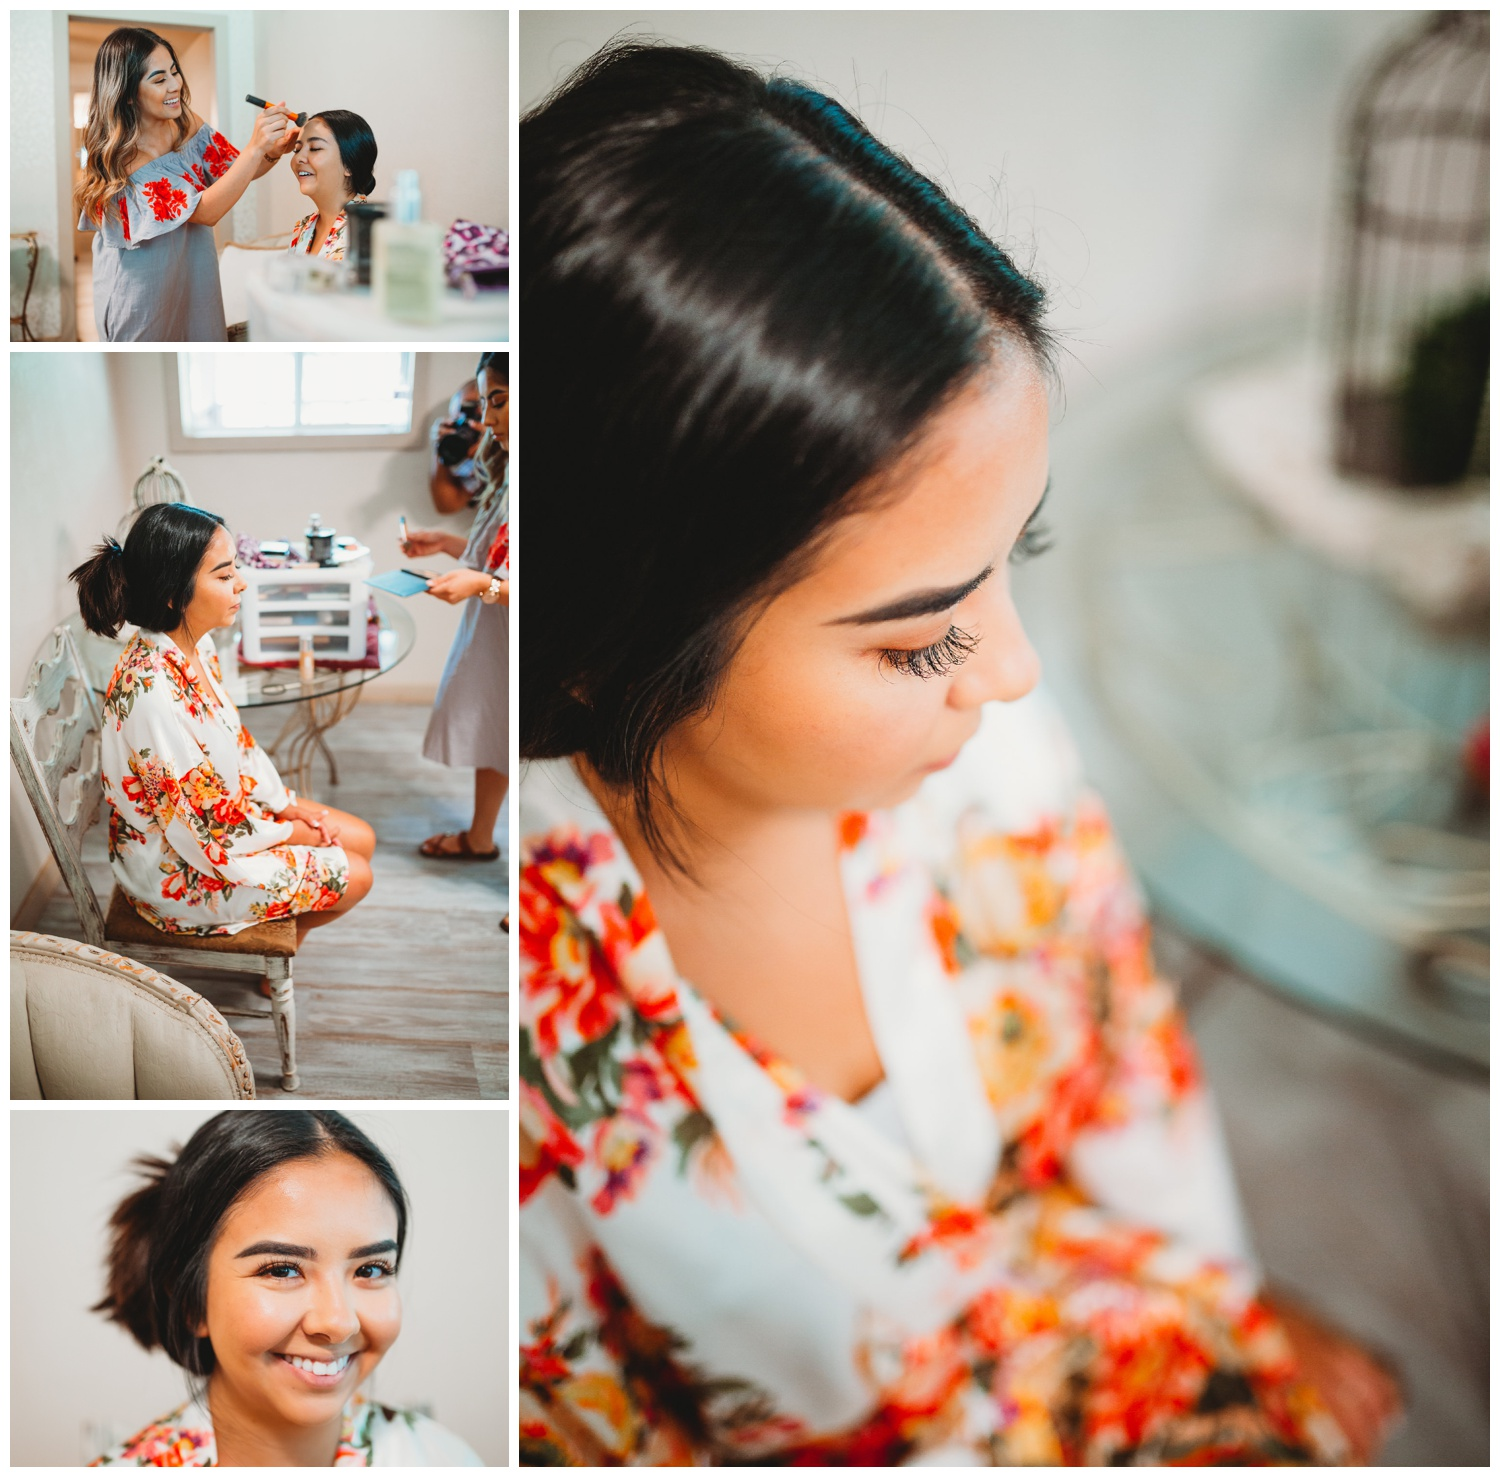 richard-guerra-photography-photographer-hobbs-lubbock-lovington-carlsbad-roswell-odessa-midland-sanantonio-dallas-texas-newmexico-wedding-quinceanera-maternity-senior-family-fulford-barn-brownfield